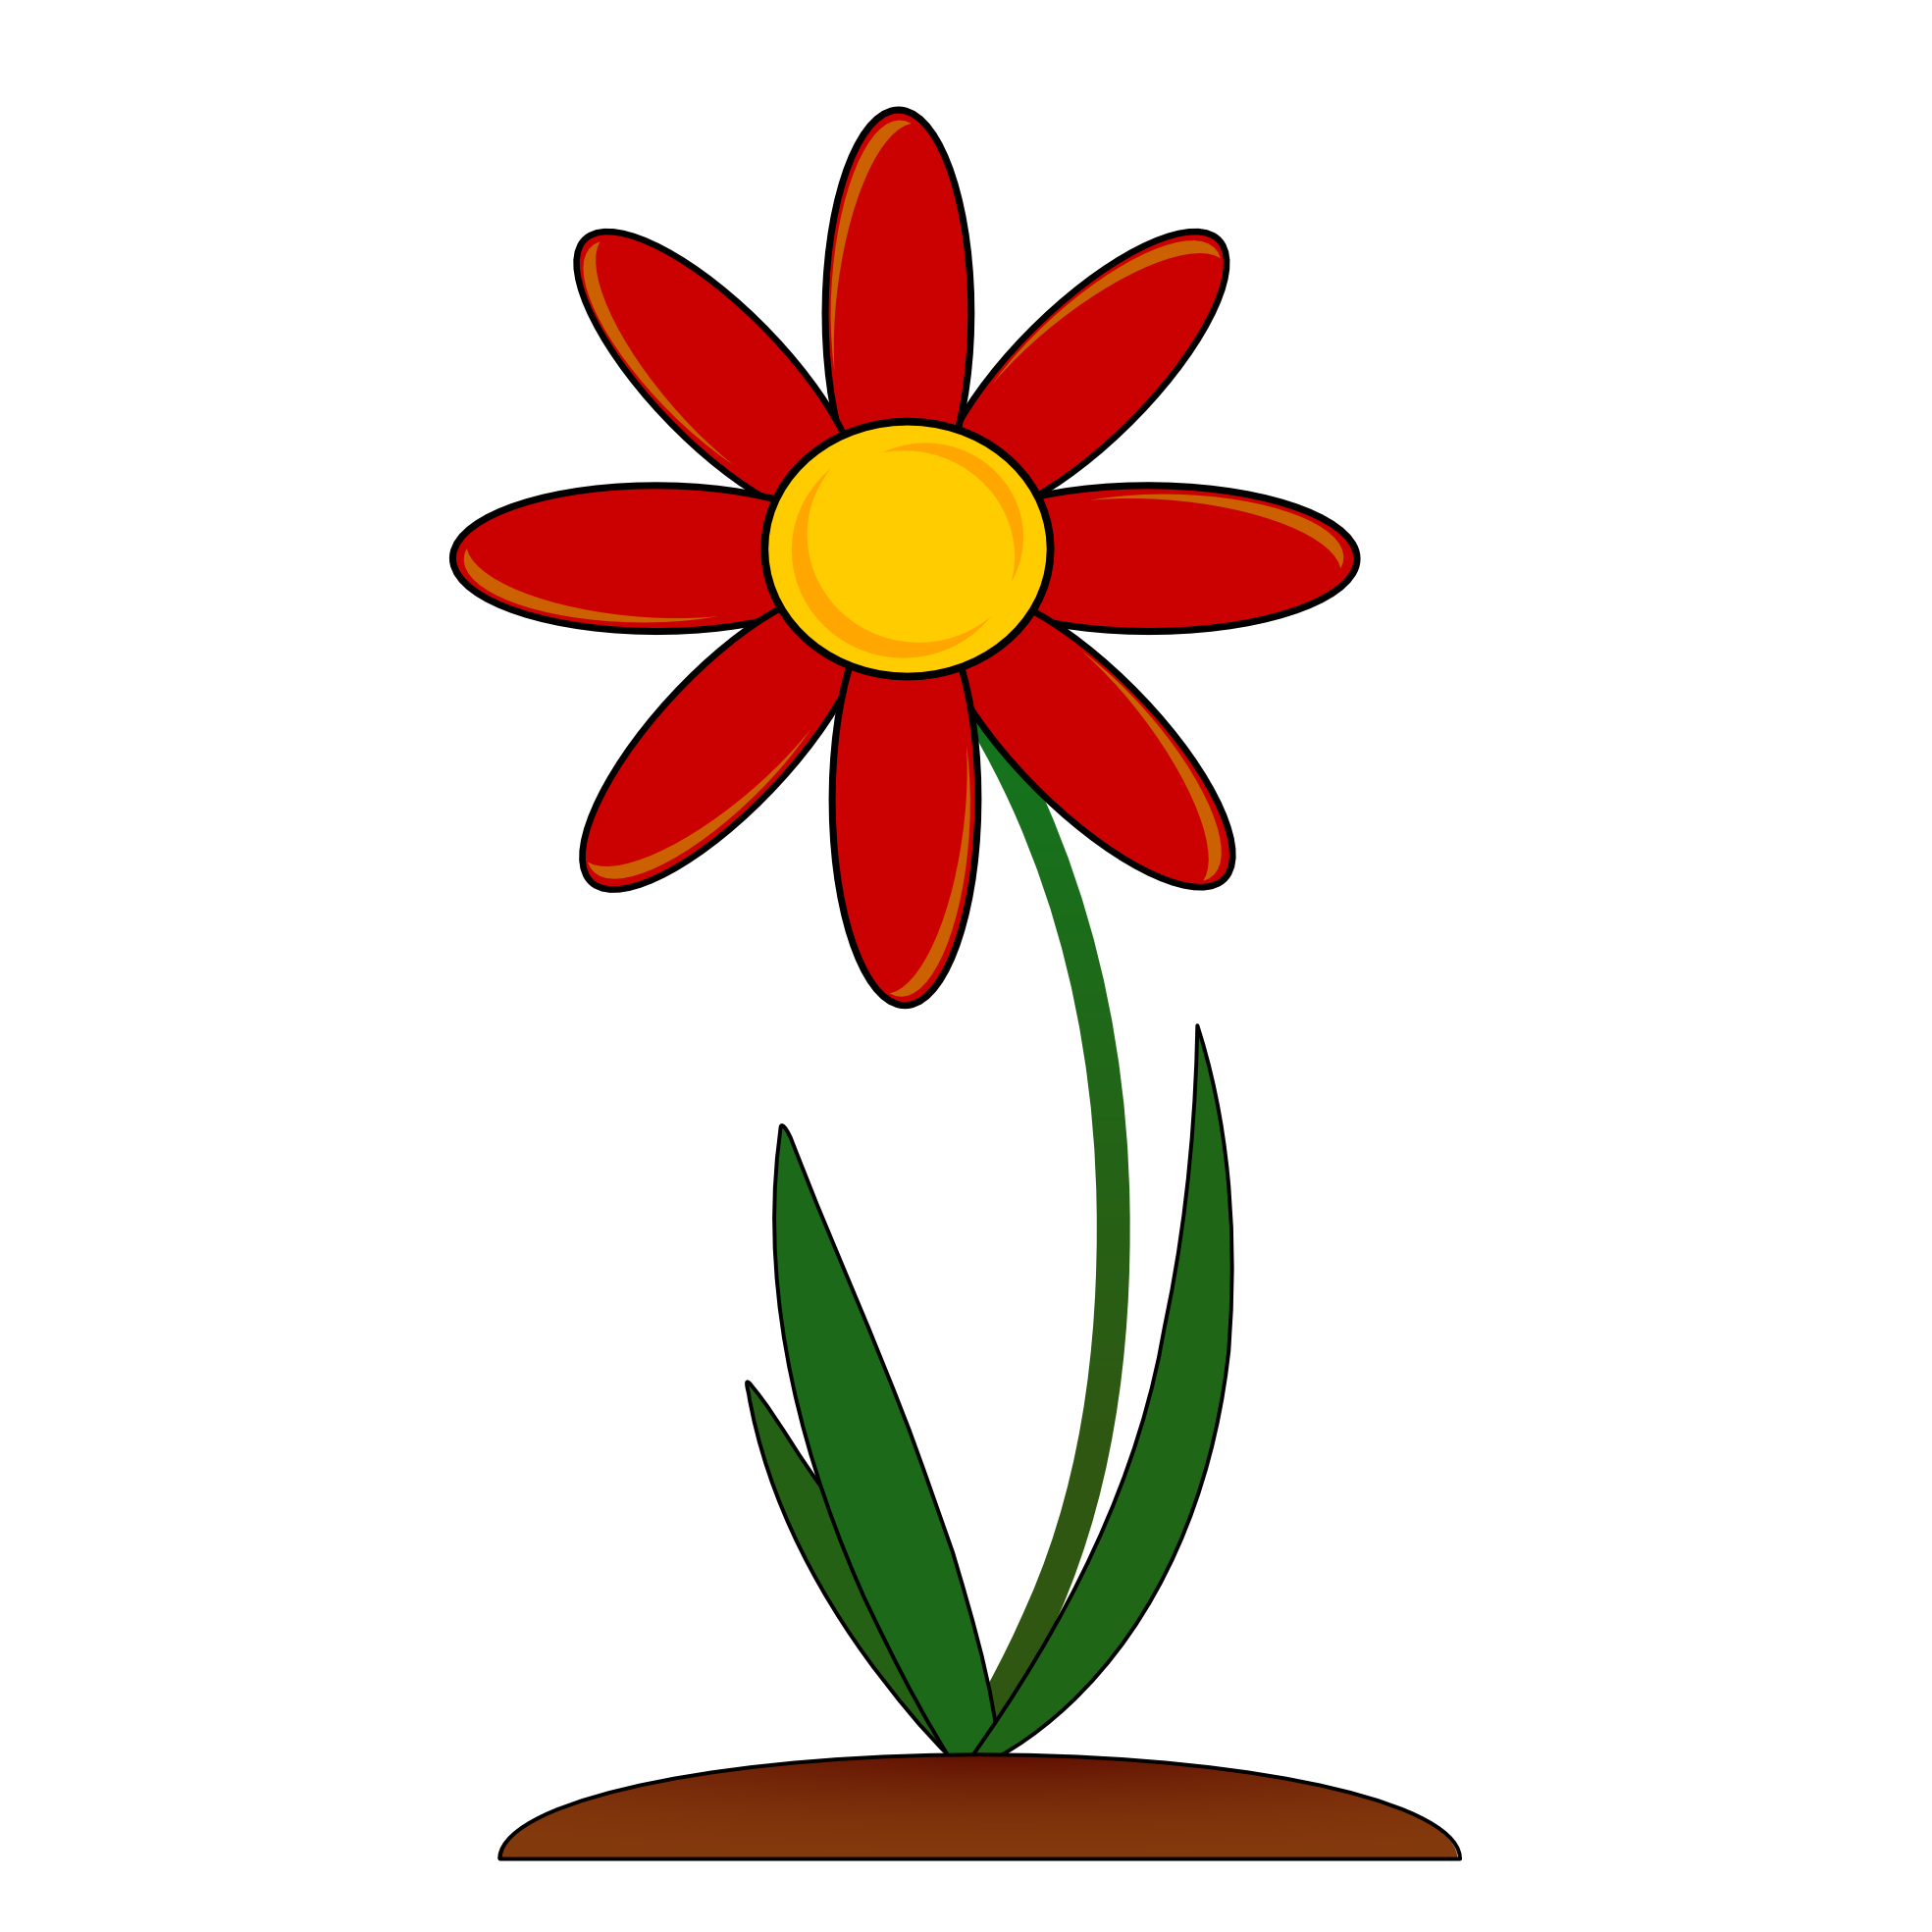 Red Flower clipart #15, Download drawings